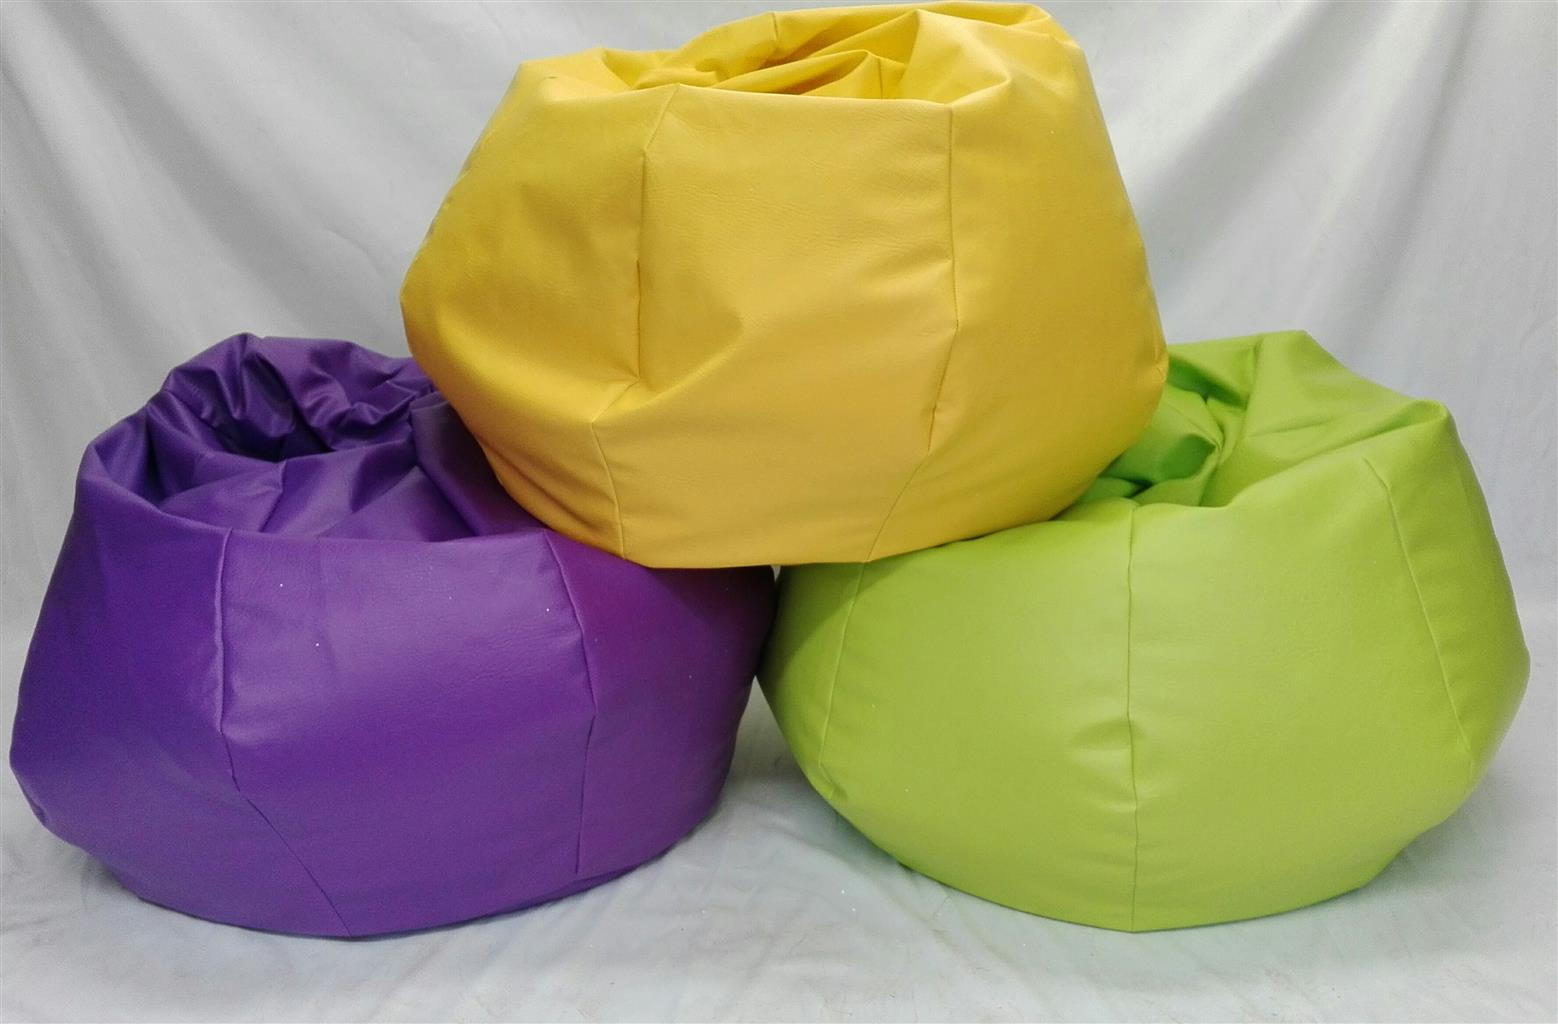 Wondrous Bean Bags For Hire Junk Mail Cjindustries Chair Design For Home Cjindustriesco